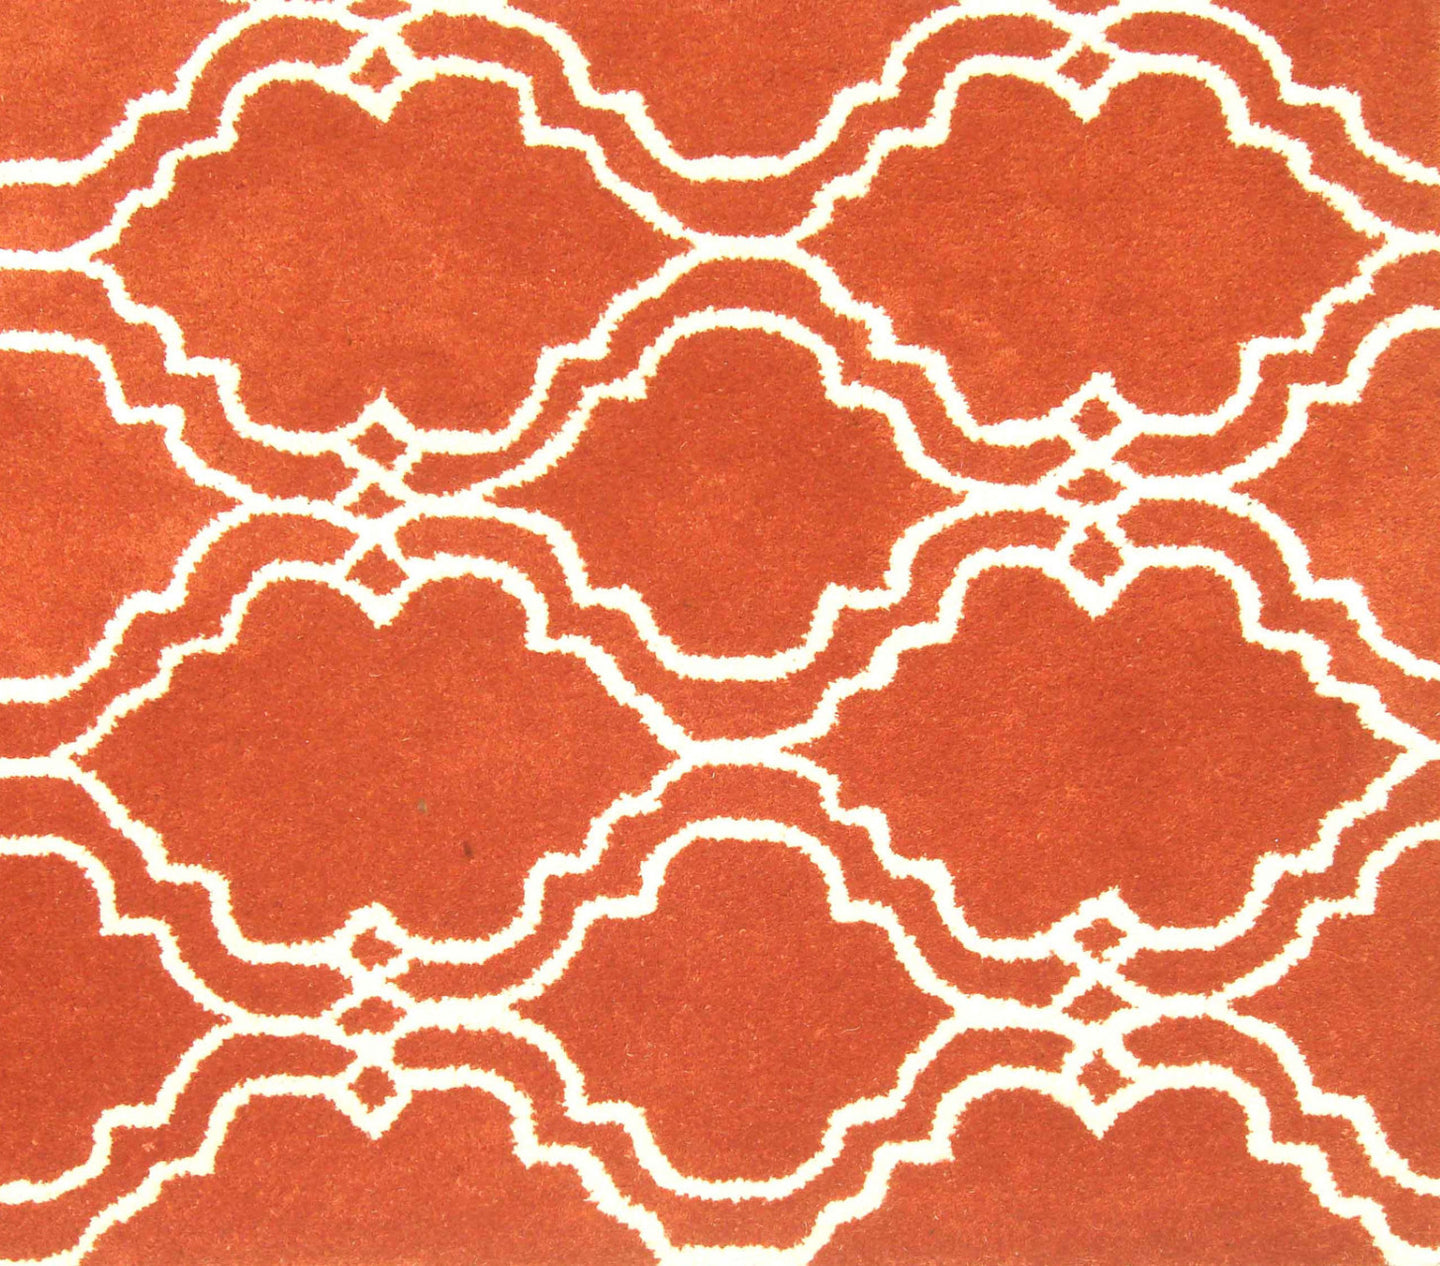 Moroccan Scroll Tile Orange Handmade Persian Style Wool Area Rug - TulipFiesta - 1